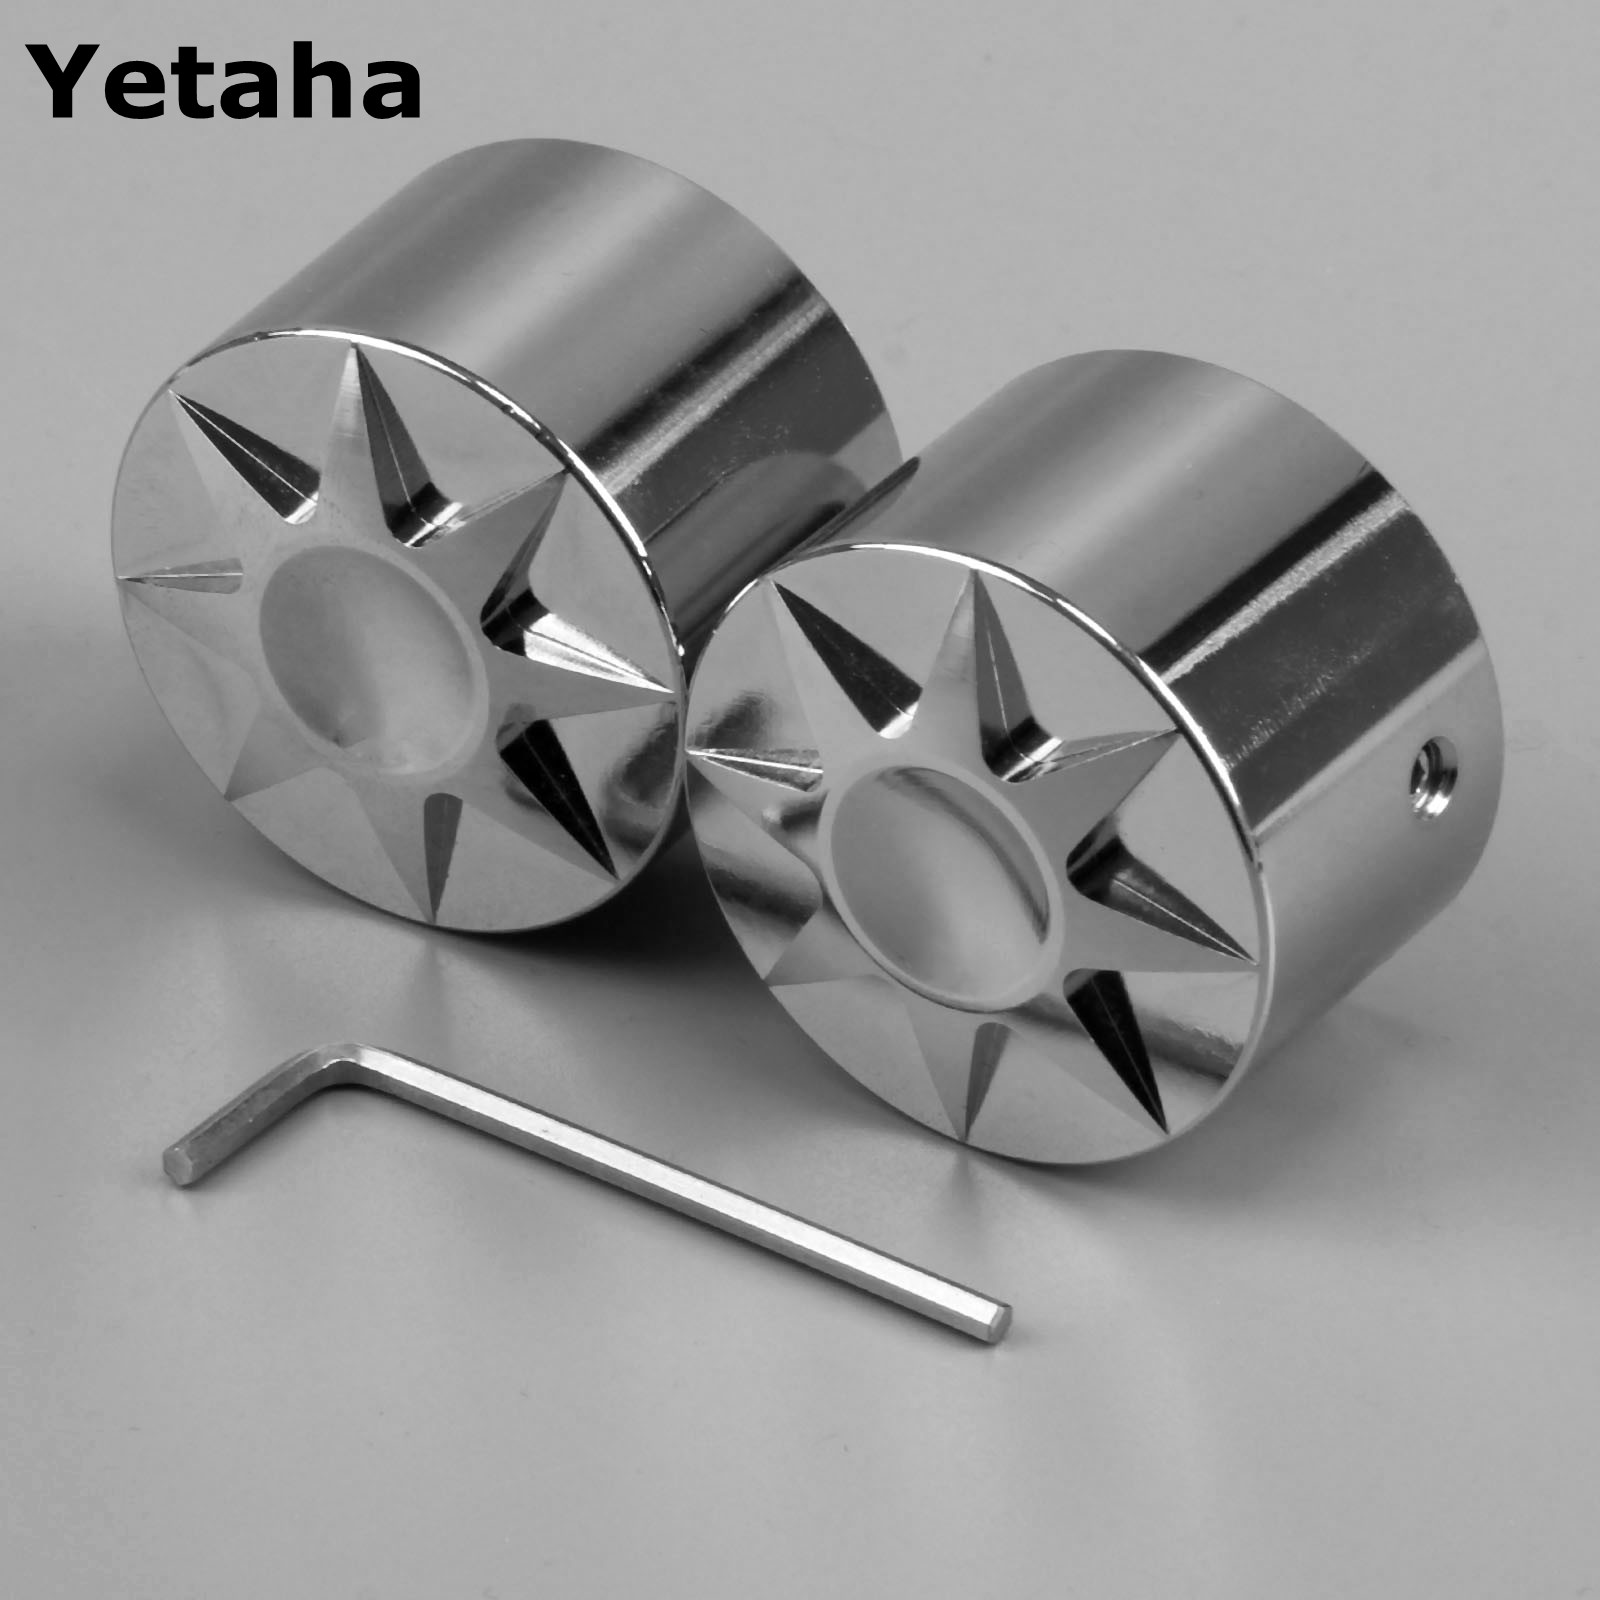 1Pair Aluminum Motorcycle Front Axle Nut Cover Cap Bolt Chrome For Harley-Davidson Motorcycle Accessories High Quality NEW abs rear chrome axle cap cover kit motorcycle decorative accessories for harley davidson sportster xl883 1200n 2005 2014 7395